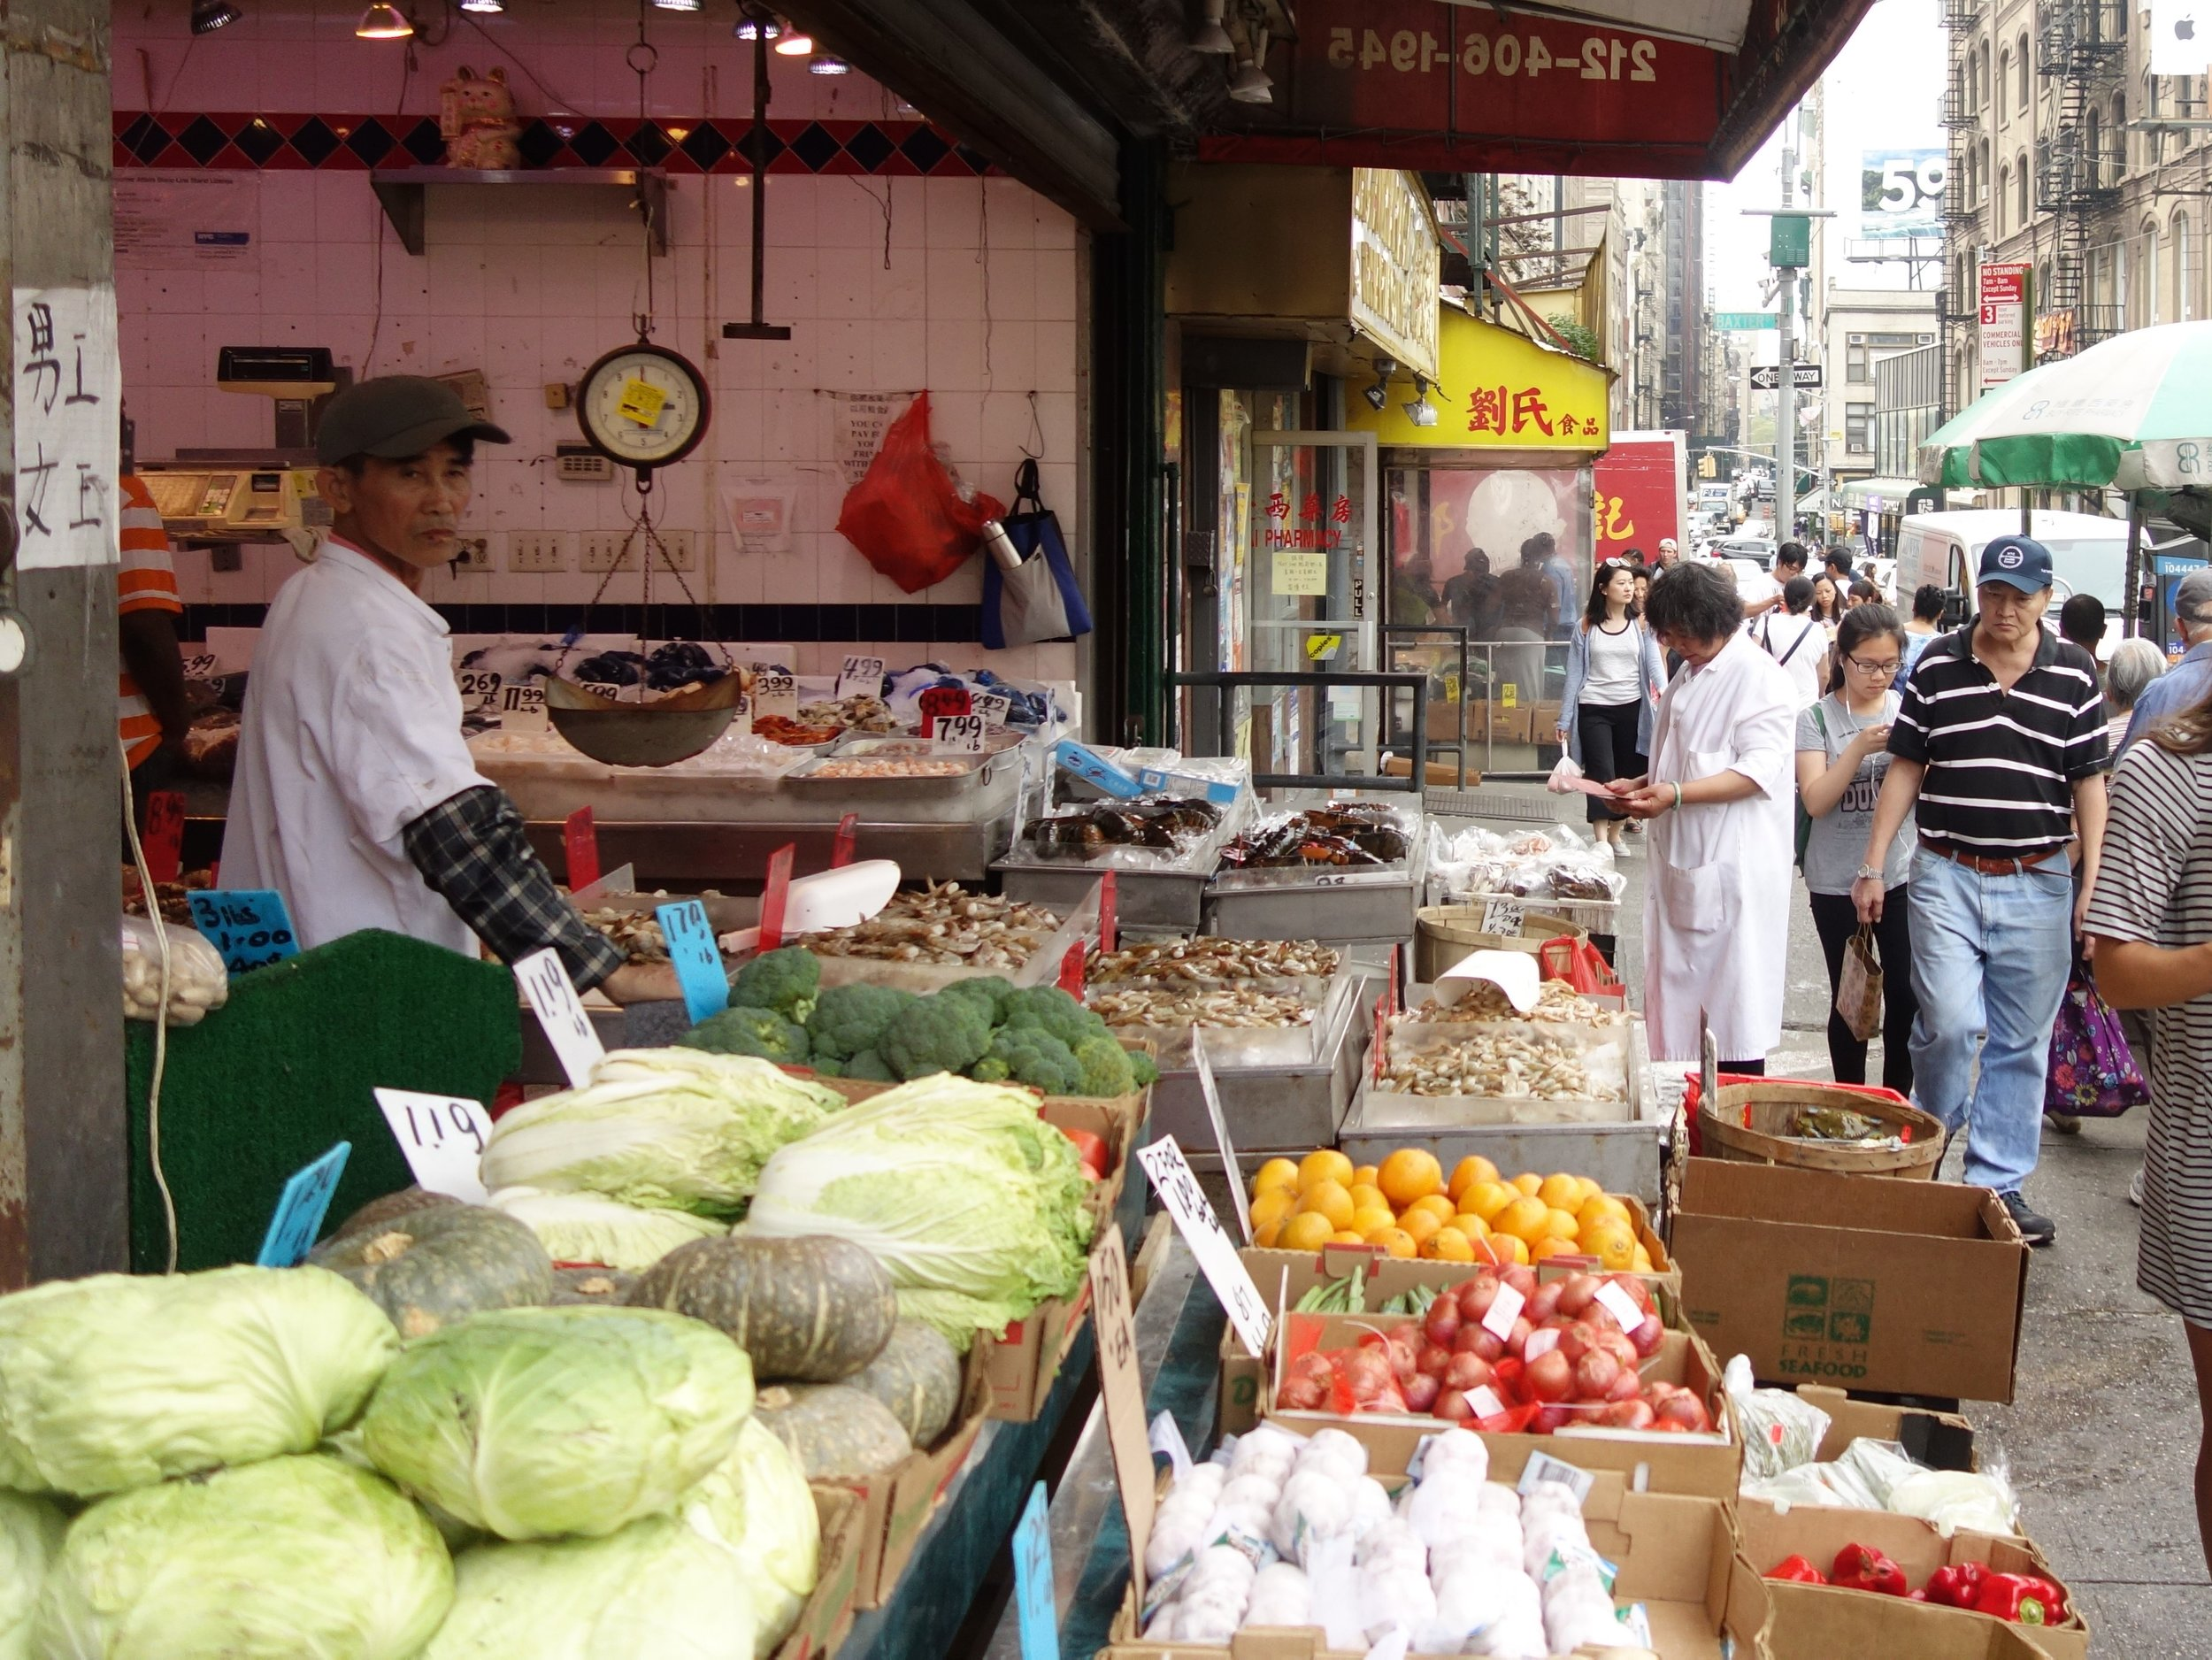 New York city is a collection of so many types of cultures, ideas, and delicious food.